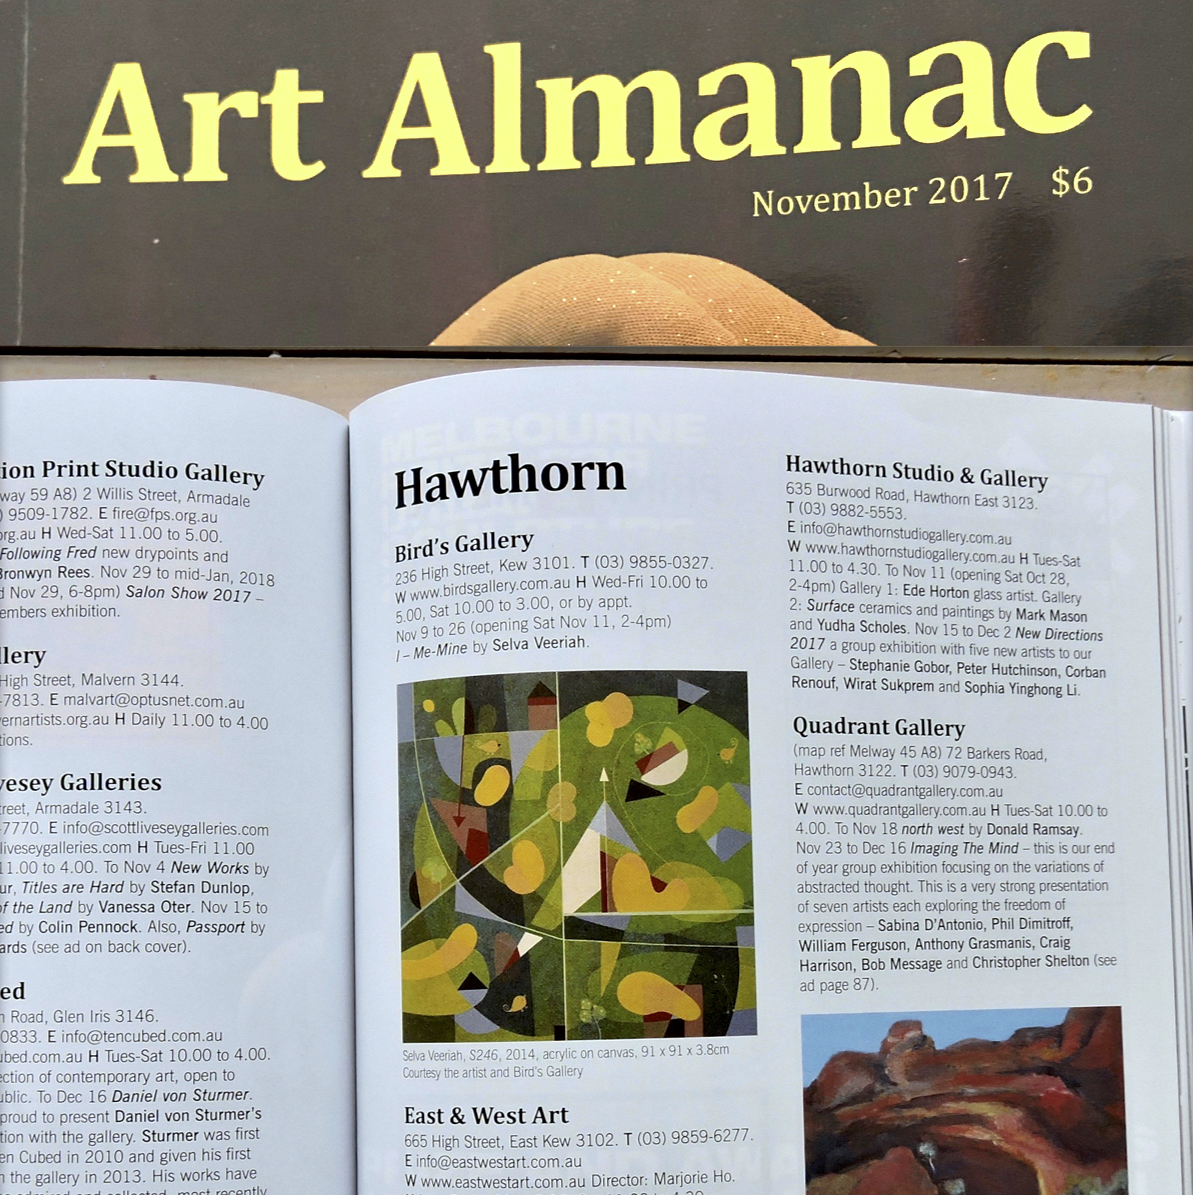 Art Almanac Nov 2017